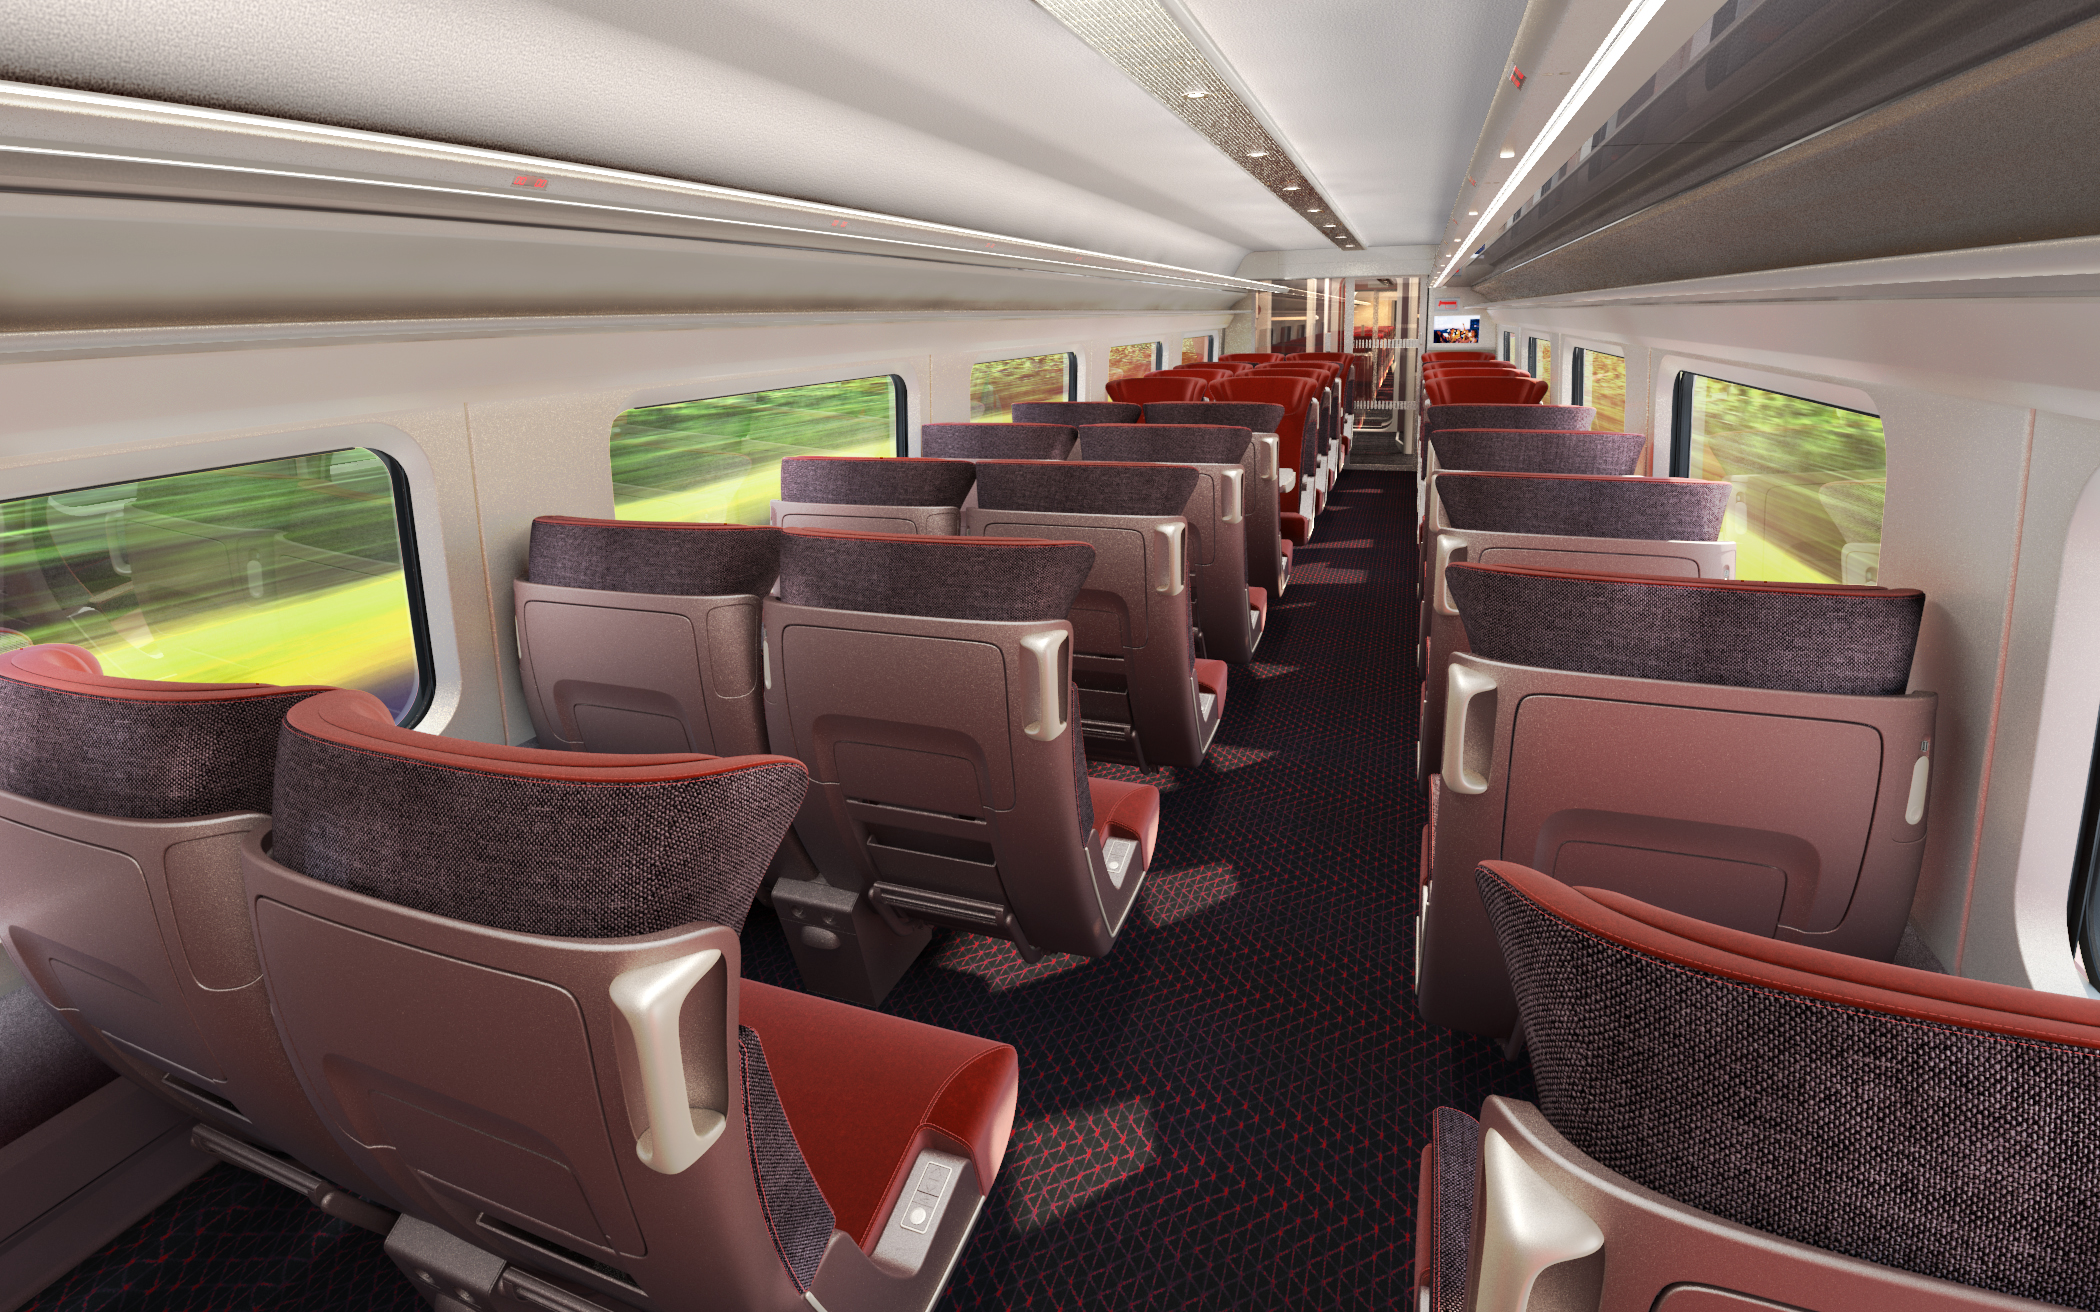 Design Interieur Tgv Interior Of Thalys High Speed Trains Completely Restyled